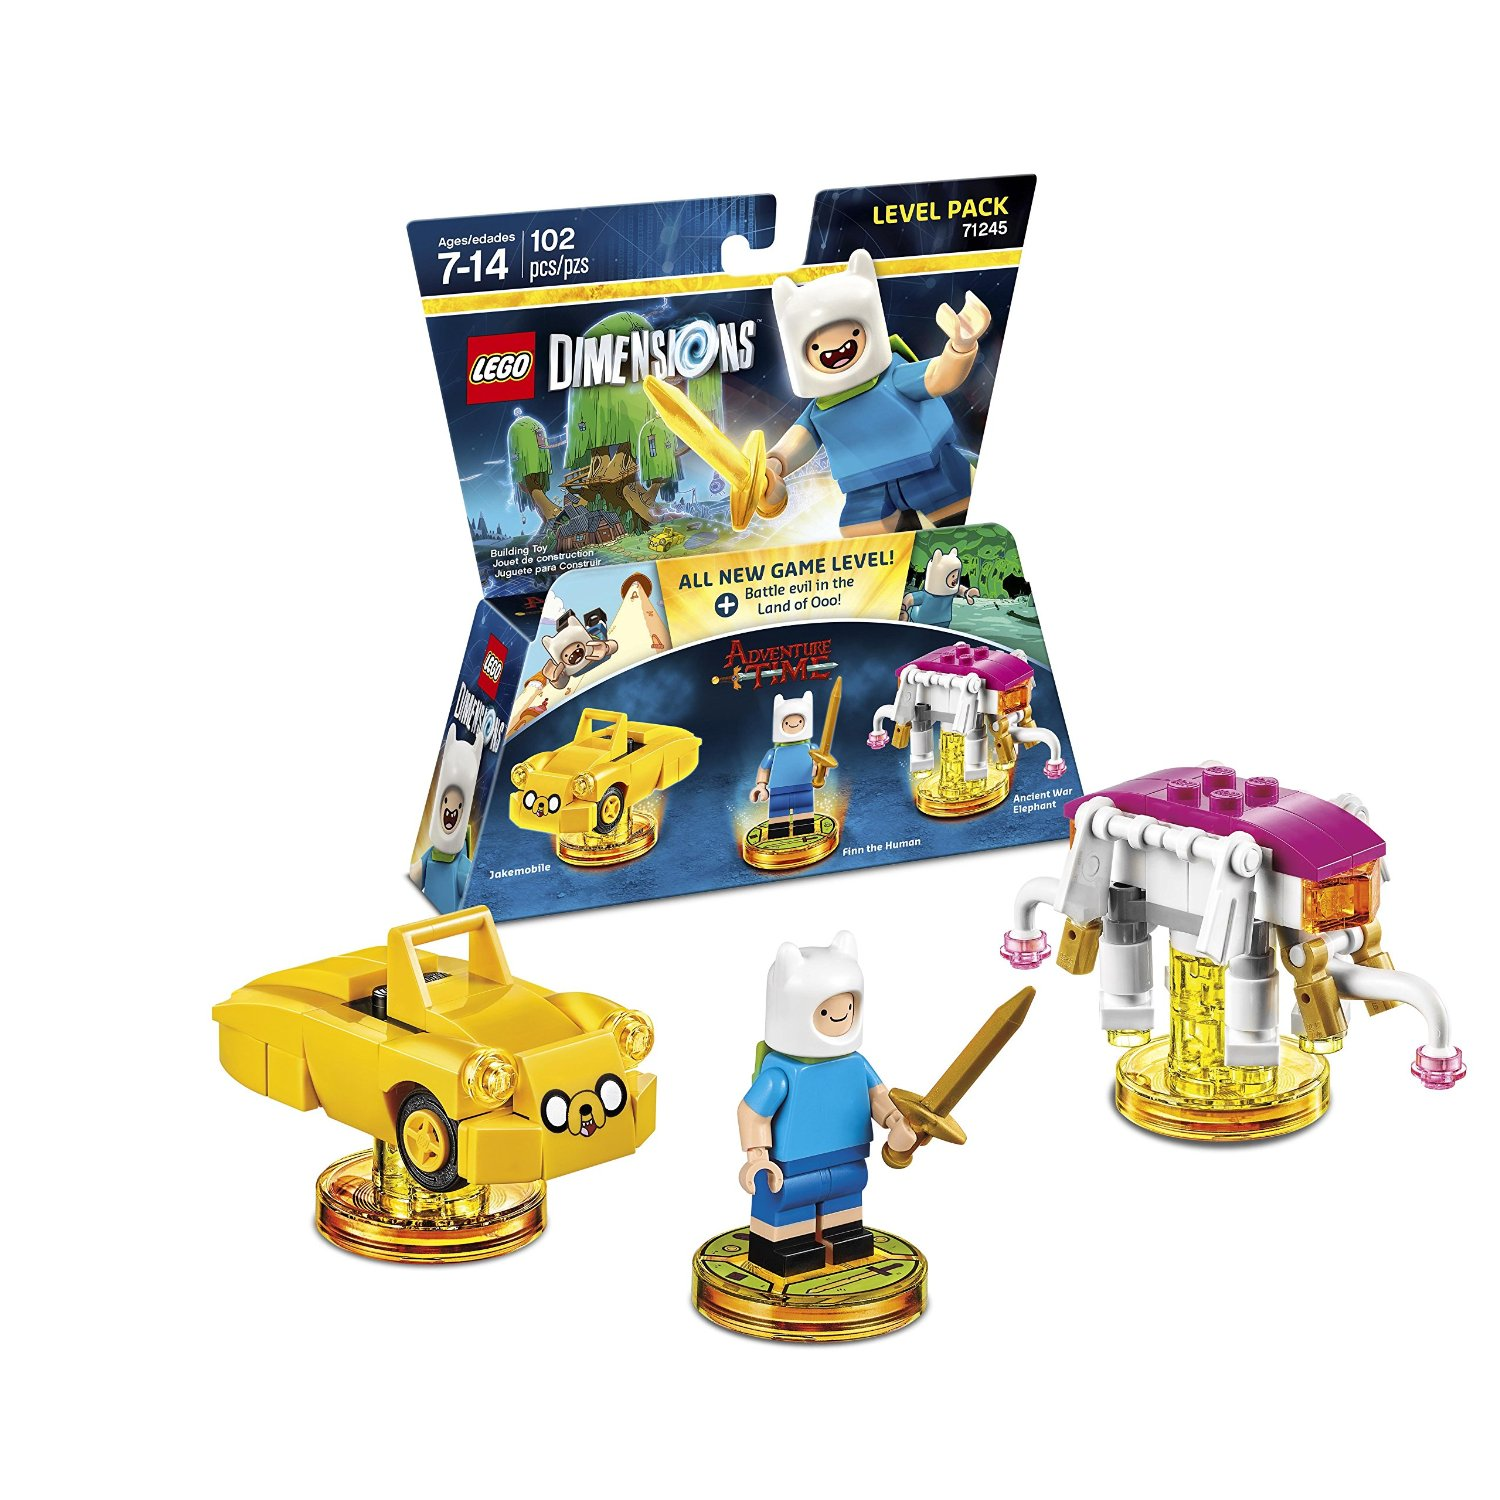 Pin Lego Dimensions Preview Xbox 360 Ansteckendes Sammelfieber On